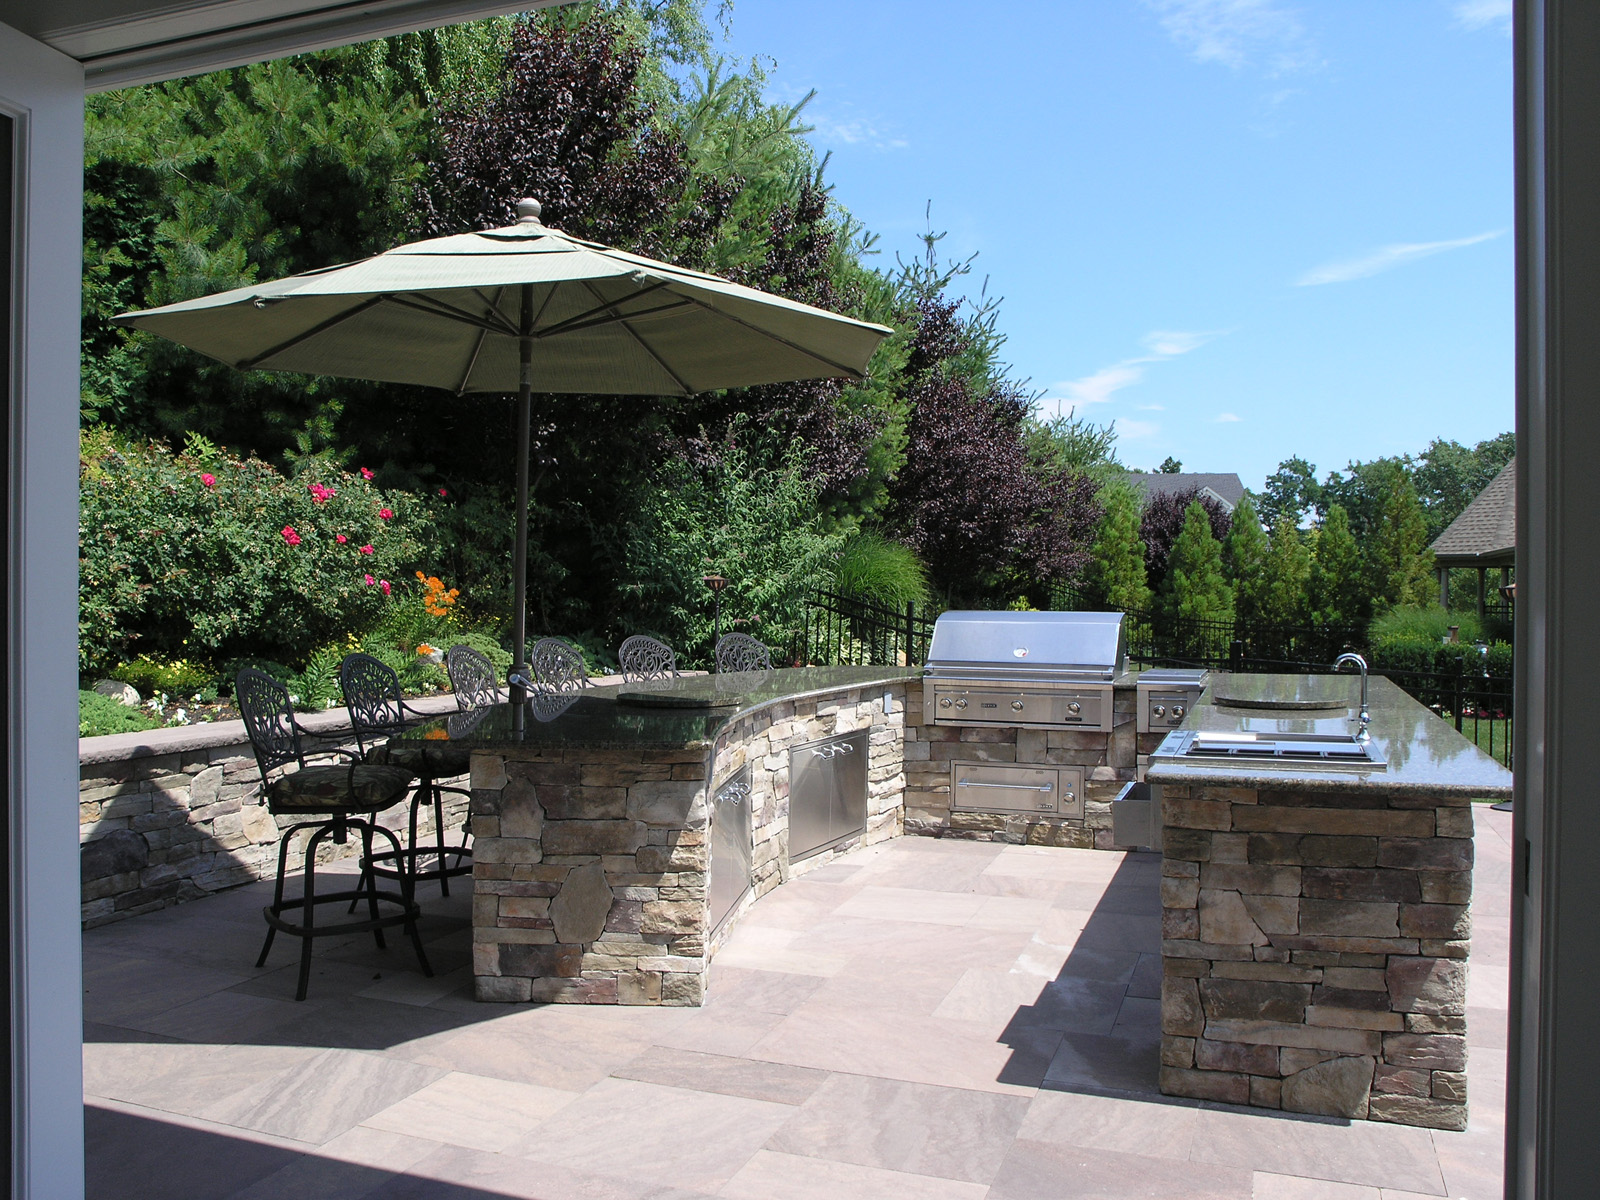 Professional outdoor kitchen landscape design company in Long Island, NY